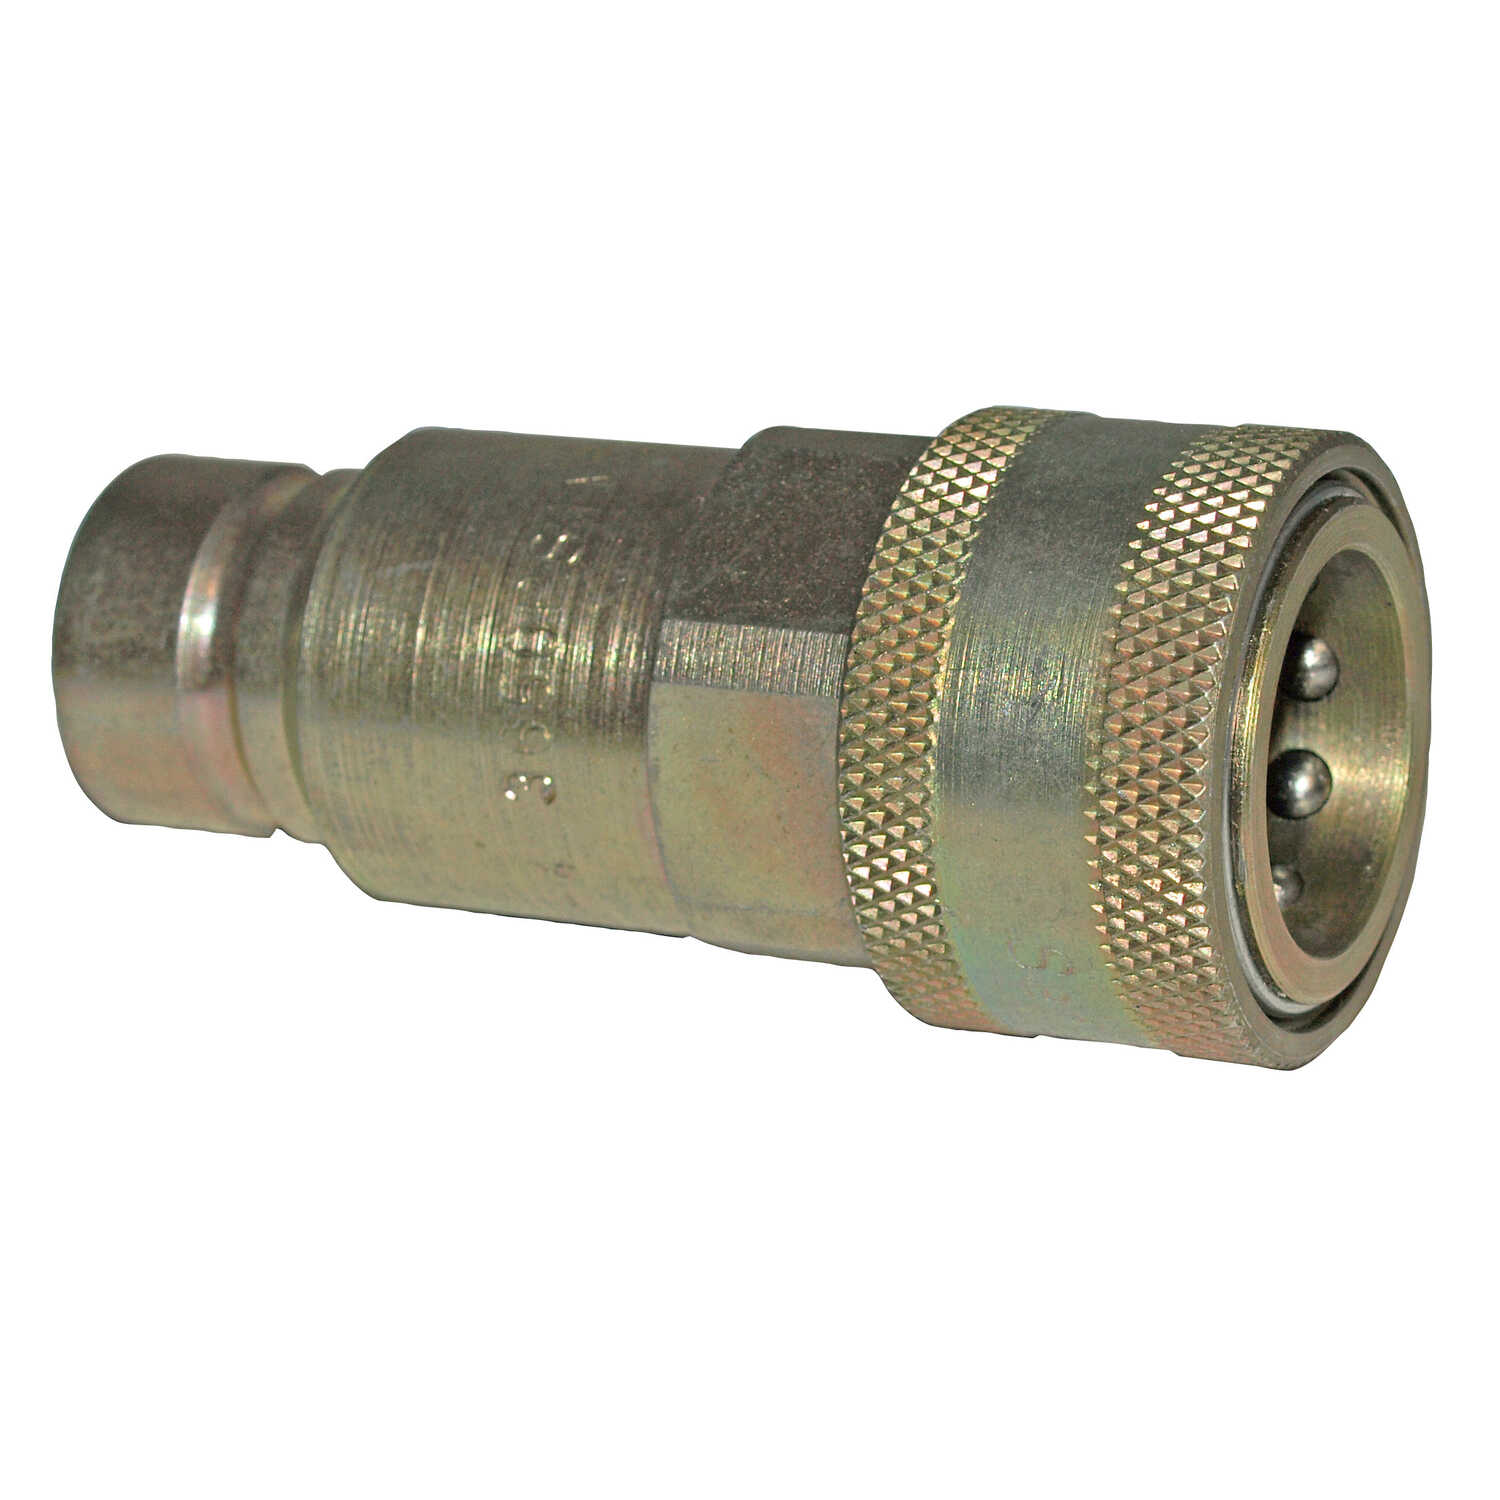 Apache  0.5 in. Dia. 3000 psi Flat Face Hydraulic Adapter  Steel